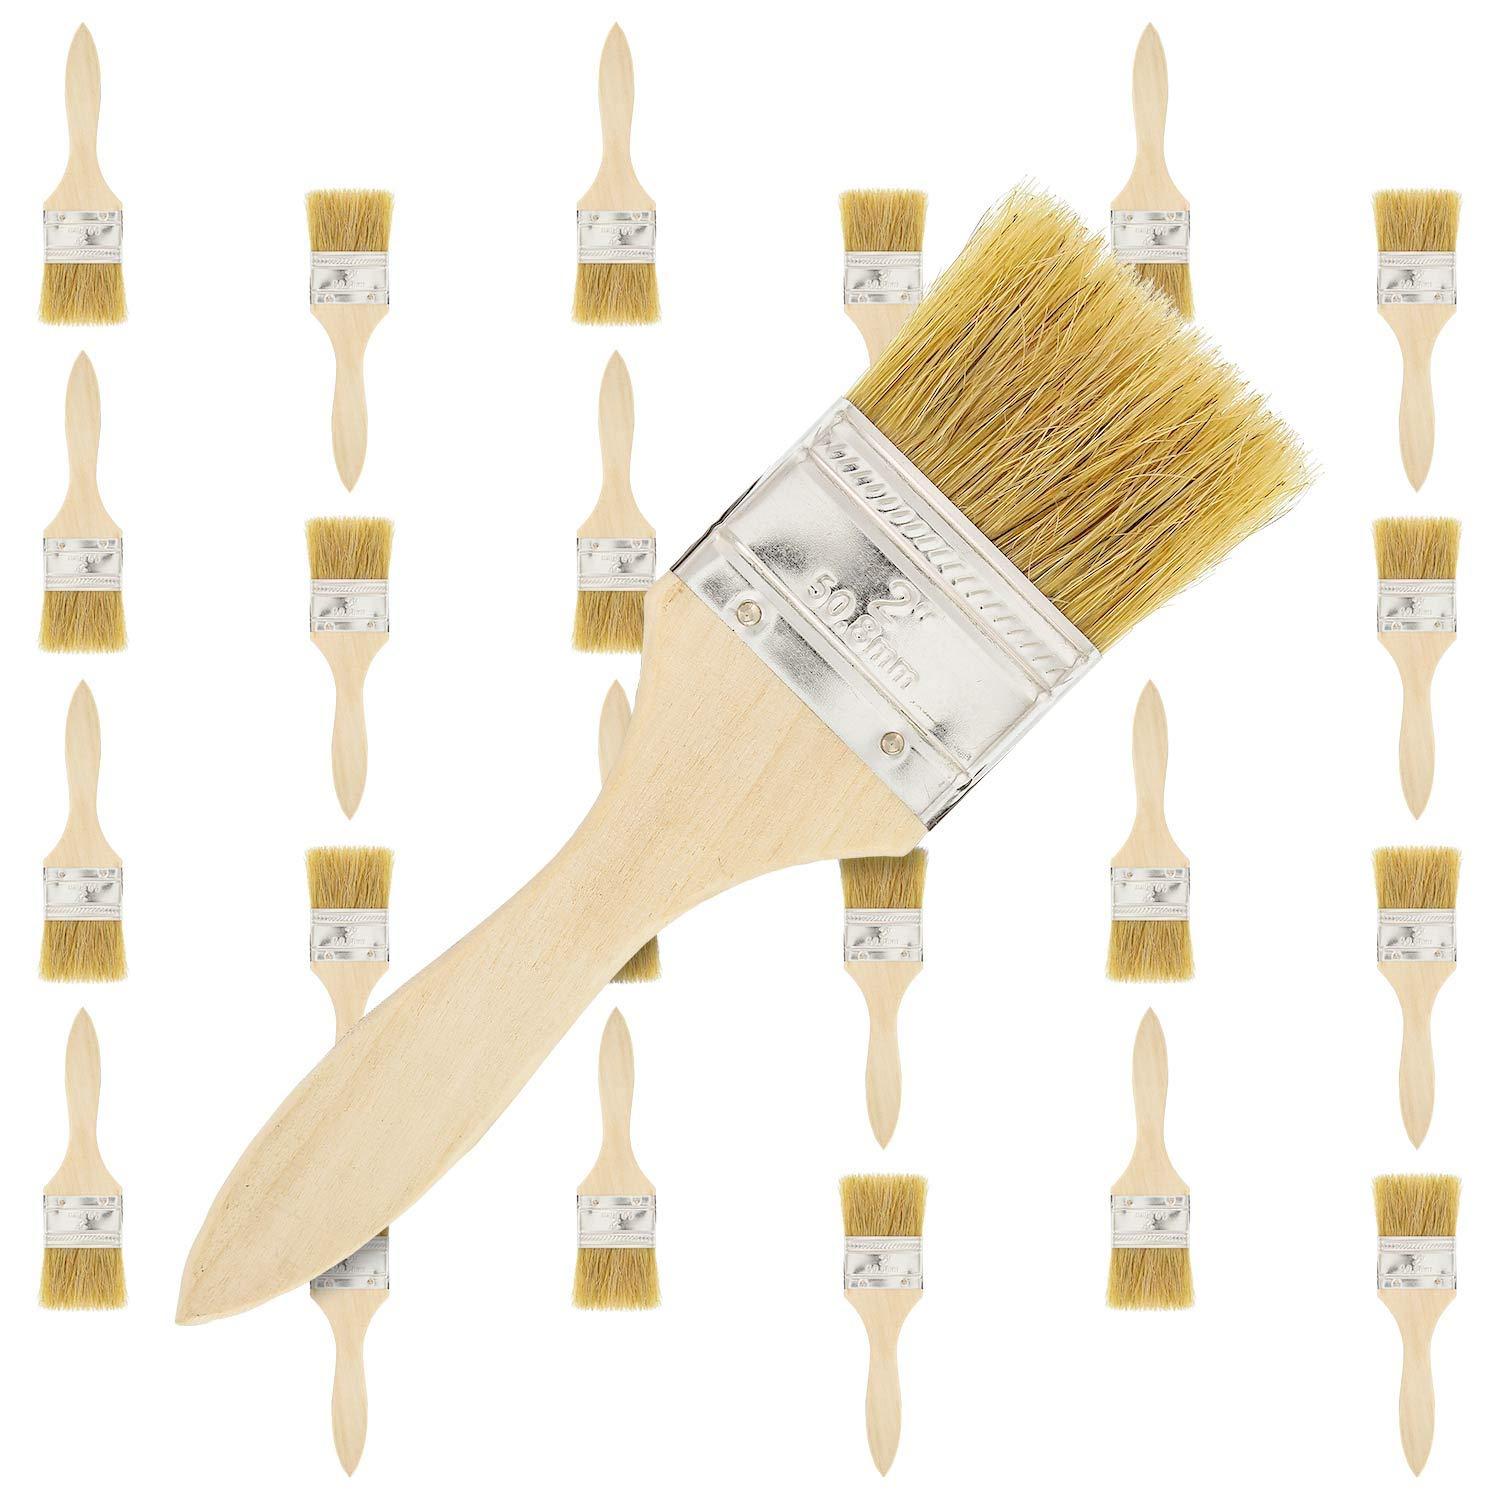 US Art Supply 24 Pack of 2 inch Paint and Chip Paint Brushes for Paint, Stains, Varnishes, Glues, and Gesso by US Art Supply